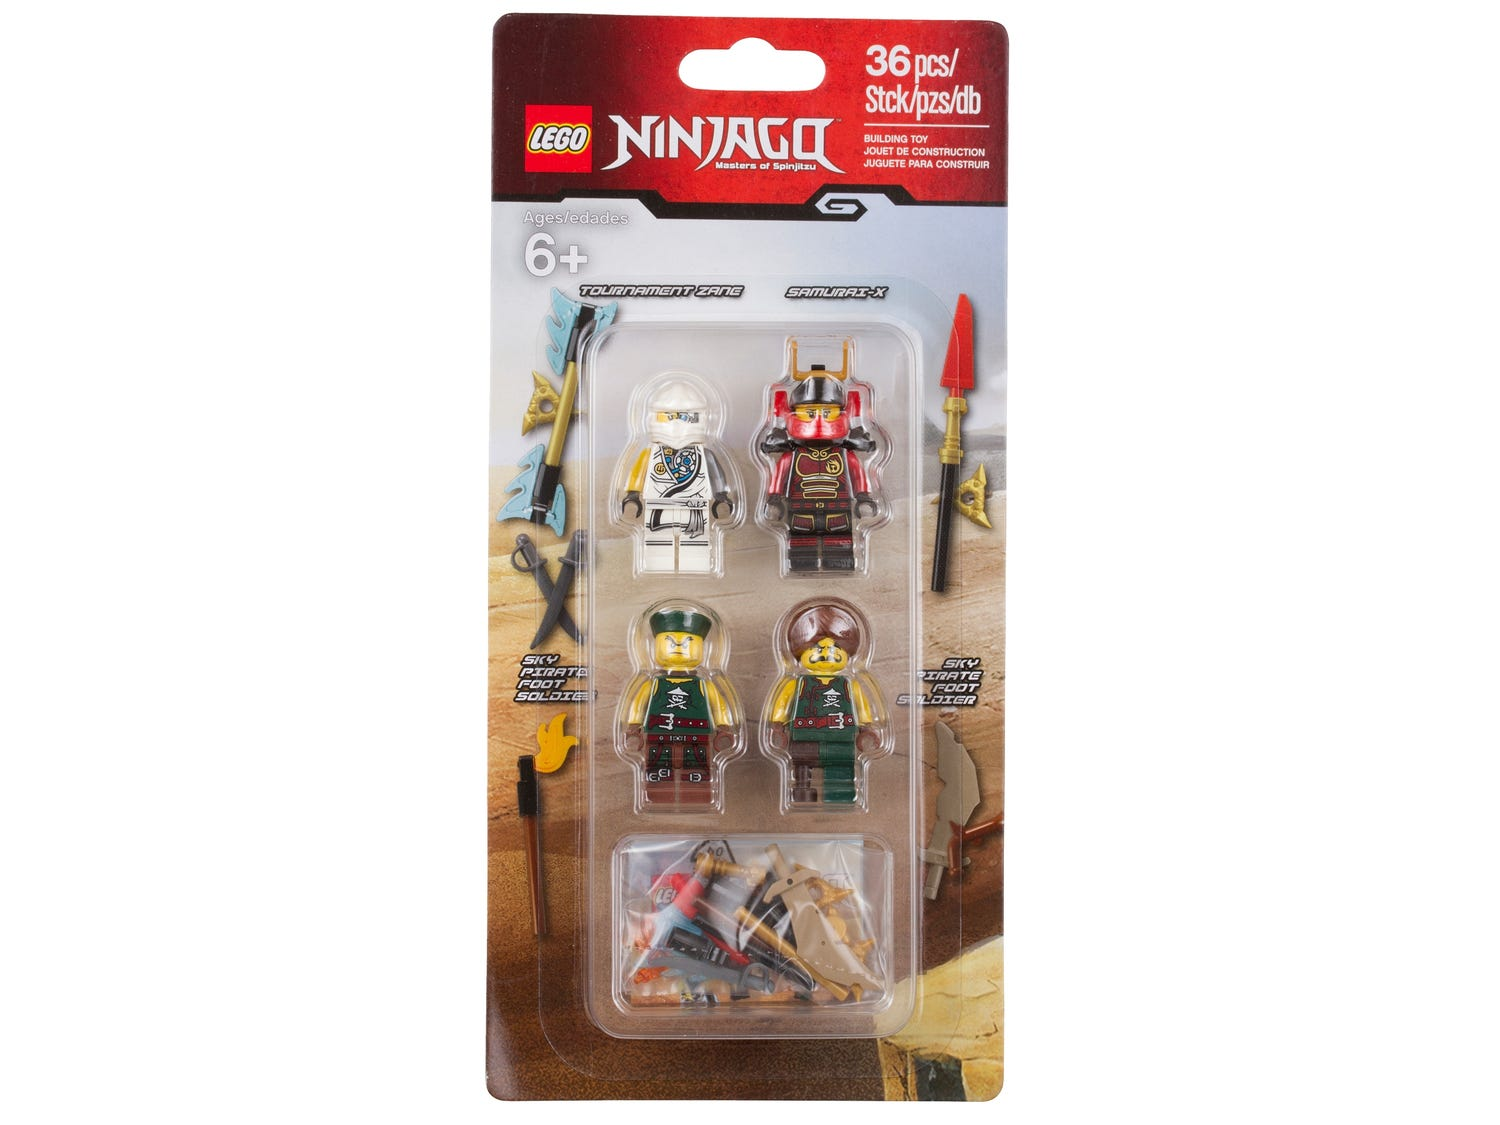 LEGO® NINJAGO™ Accessory Set